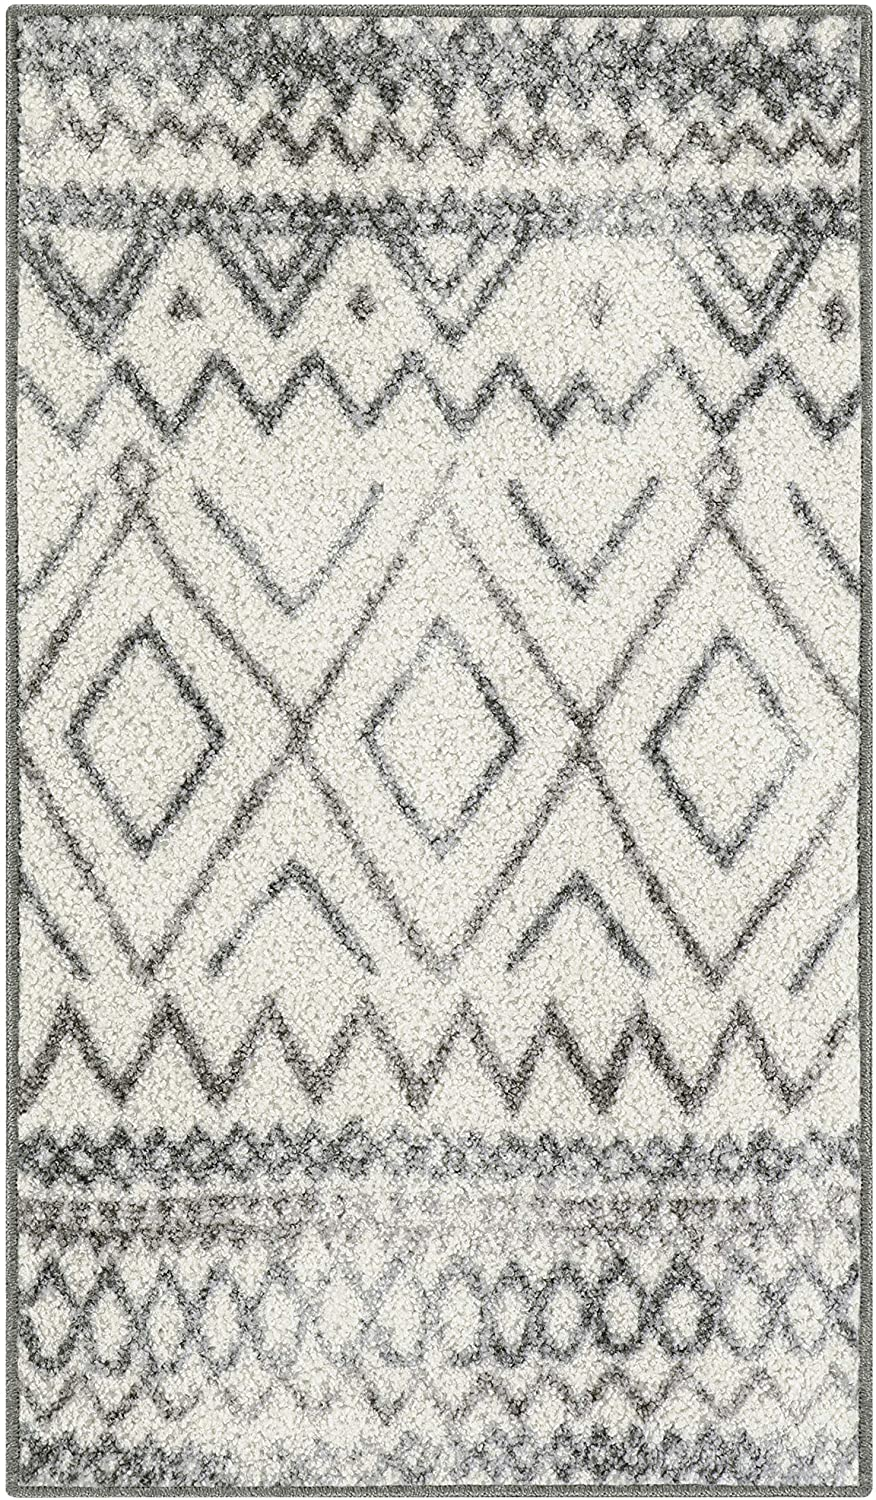 Maples Rugs Abstract Diamond Modern Distressed Kitchen Rugs